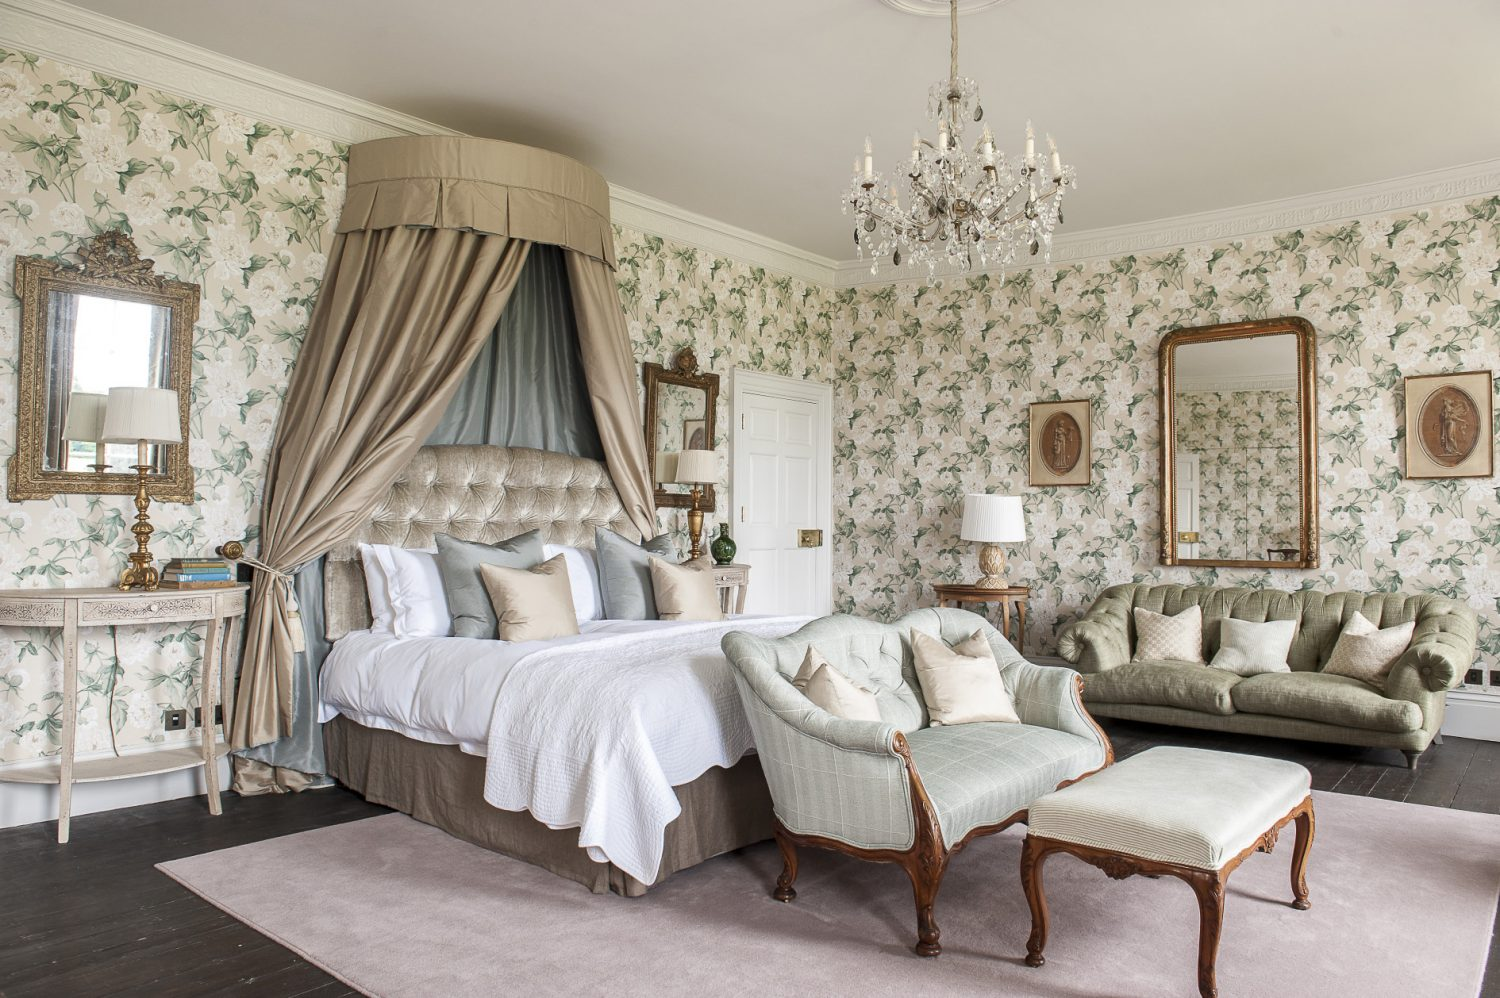 The largest of the twelve bedrooms, the FitzWalter Suite is decorated with Colefax and Fowler white rose paper. The built-in wardrobes are hidden behind wallpapered doors. Light pours in from three full-height windows with glorious views over the grounds. Francesca designed the corona over the bed in Colefax and Fowler silk